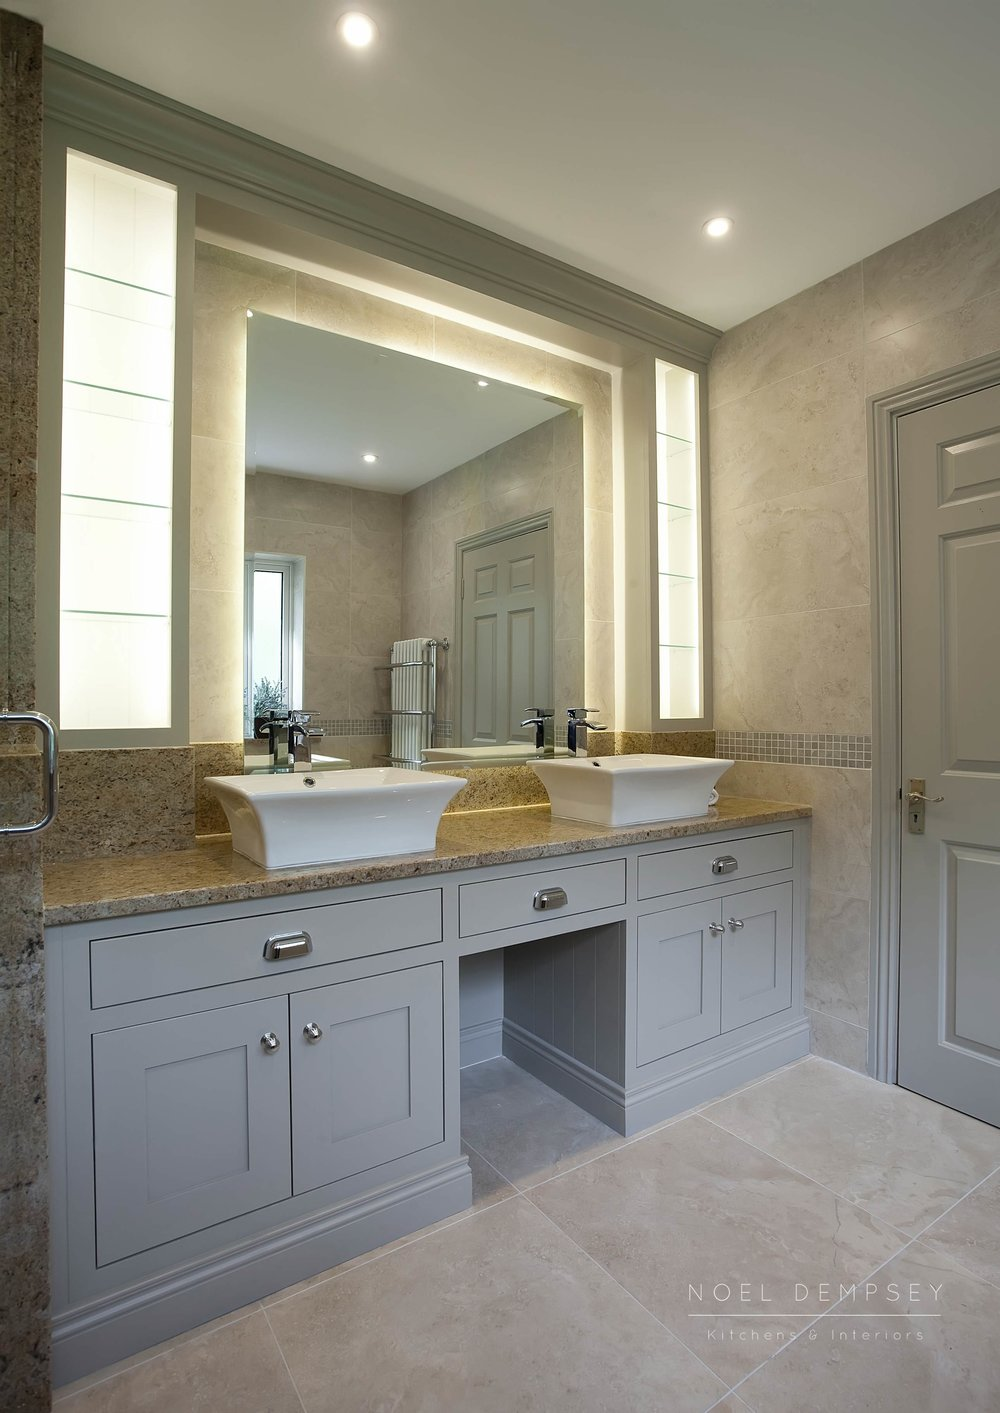 Custom designed bathroom by Noel Dempsey